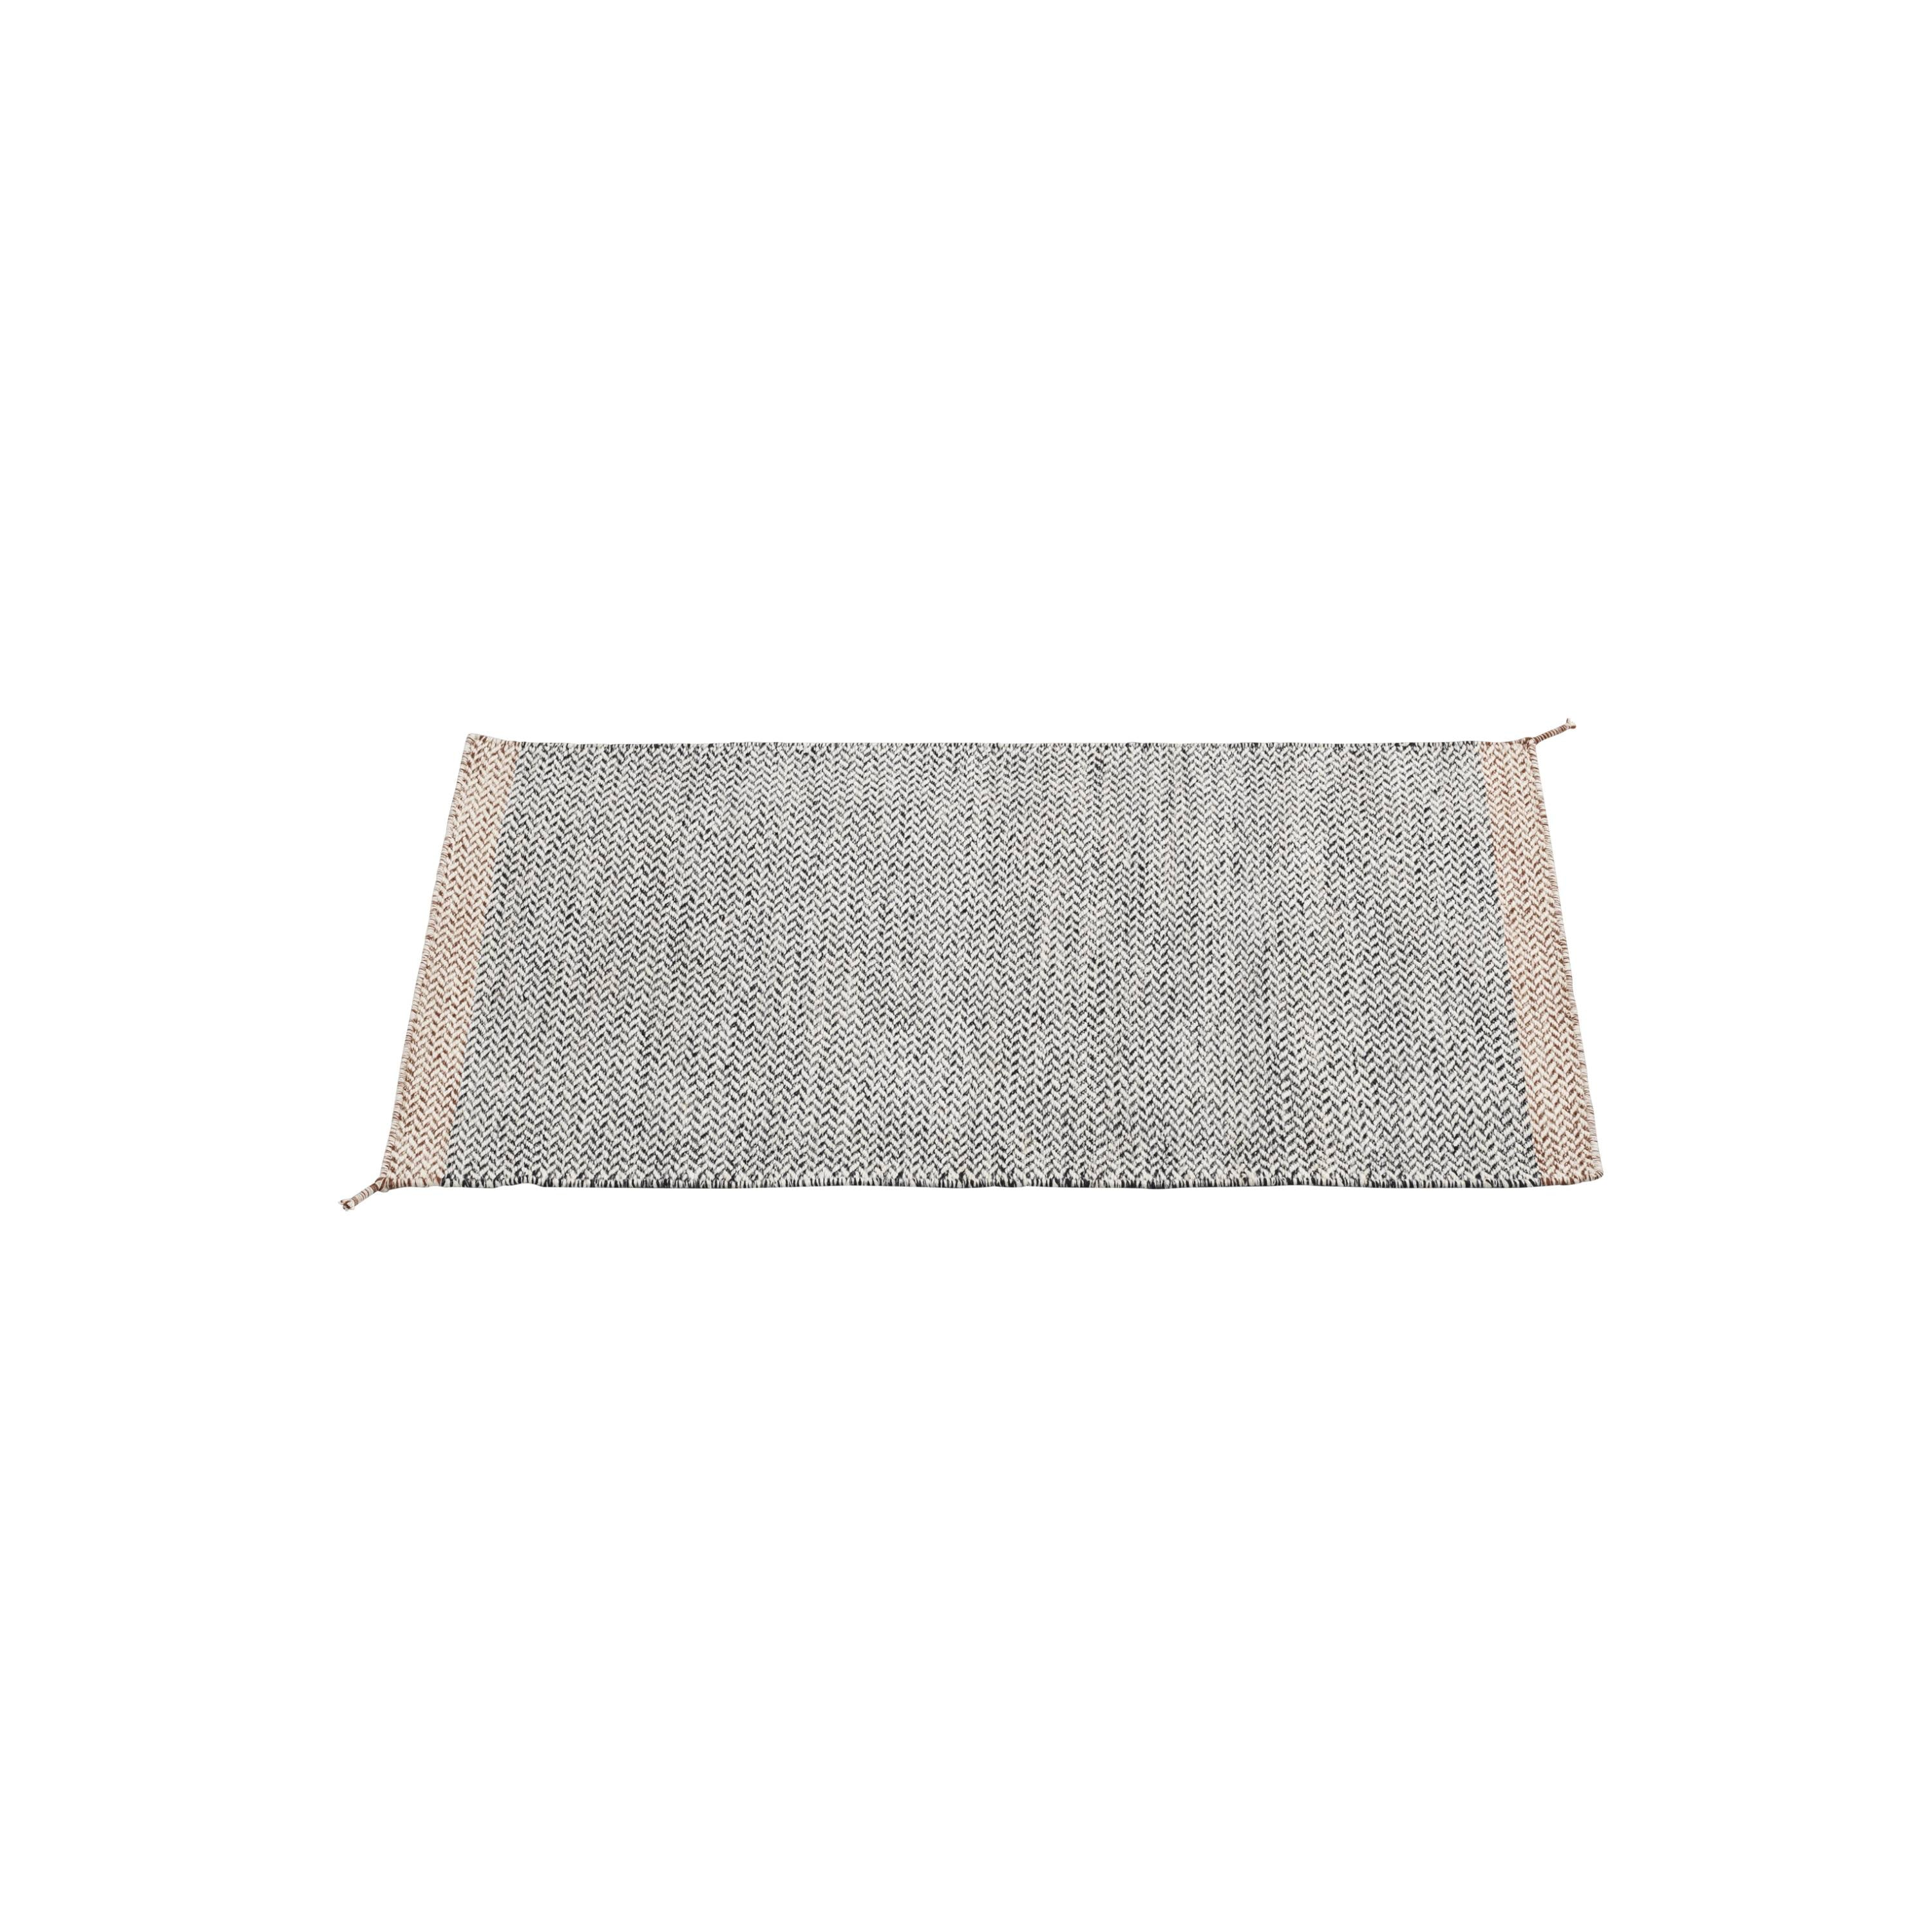 Ply Rug: Small + Black + White